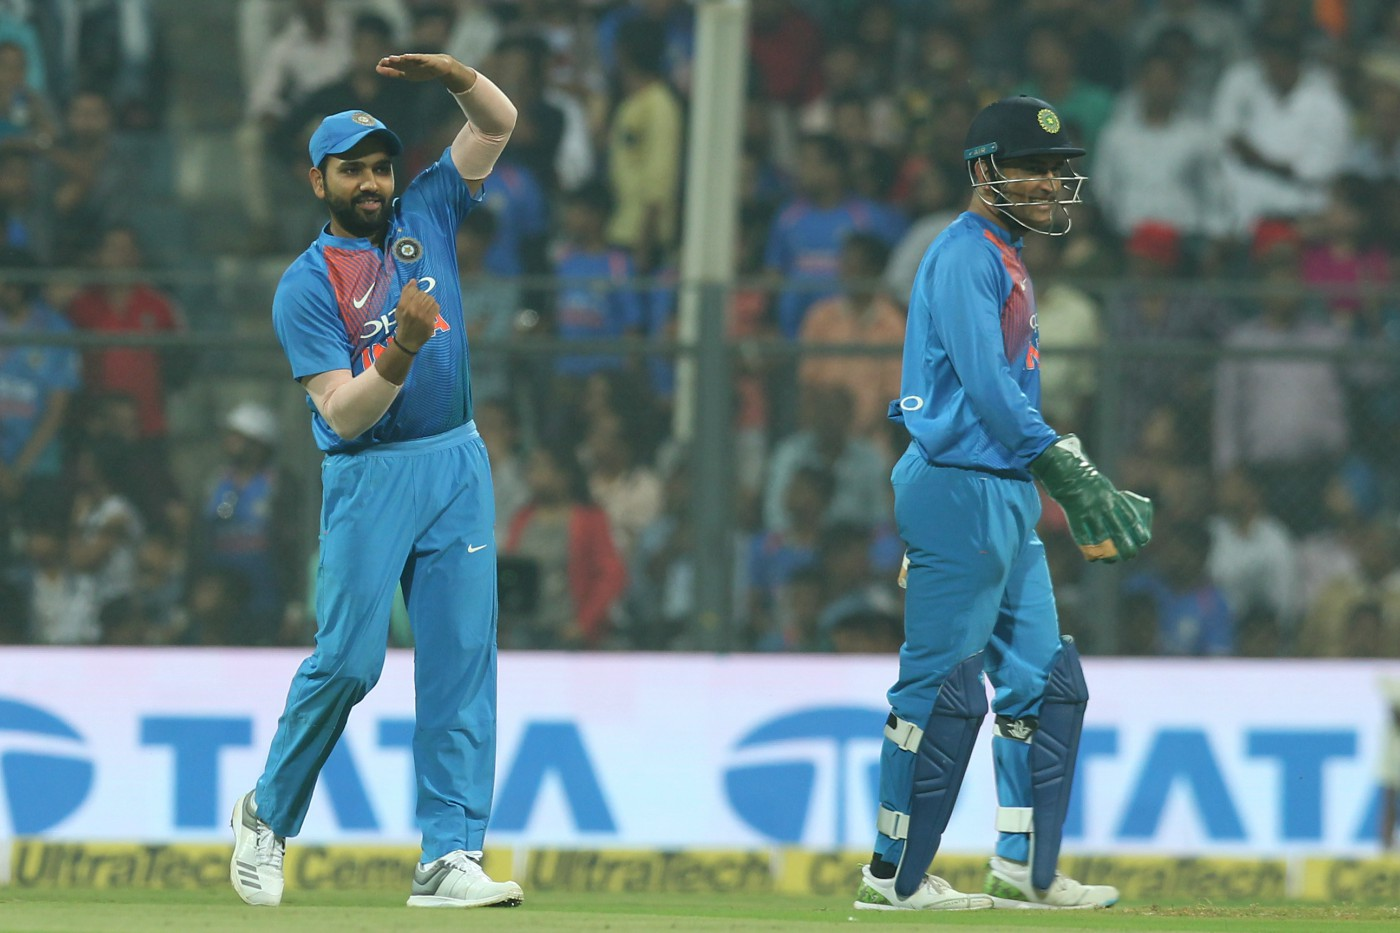 IND vs SL 2017, 3rd T20I: Everyone Will Leave From Here a Better Player - Nic Pothas